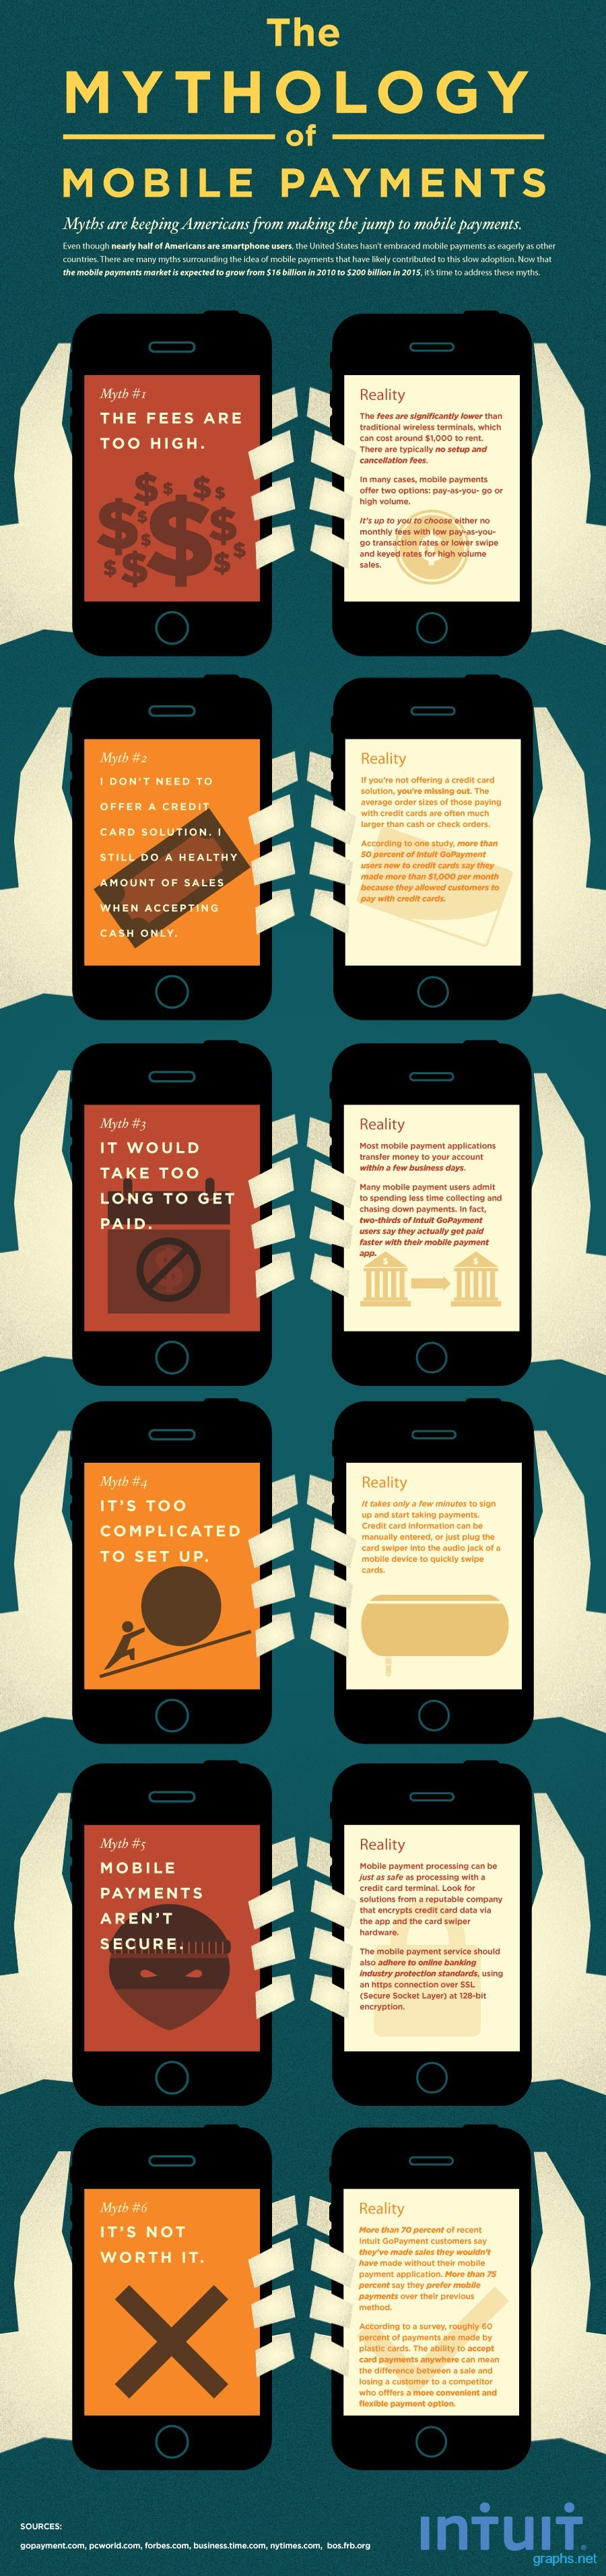 Mobile Payments Facts